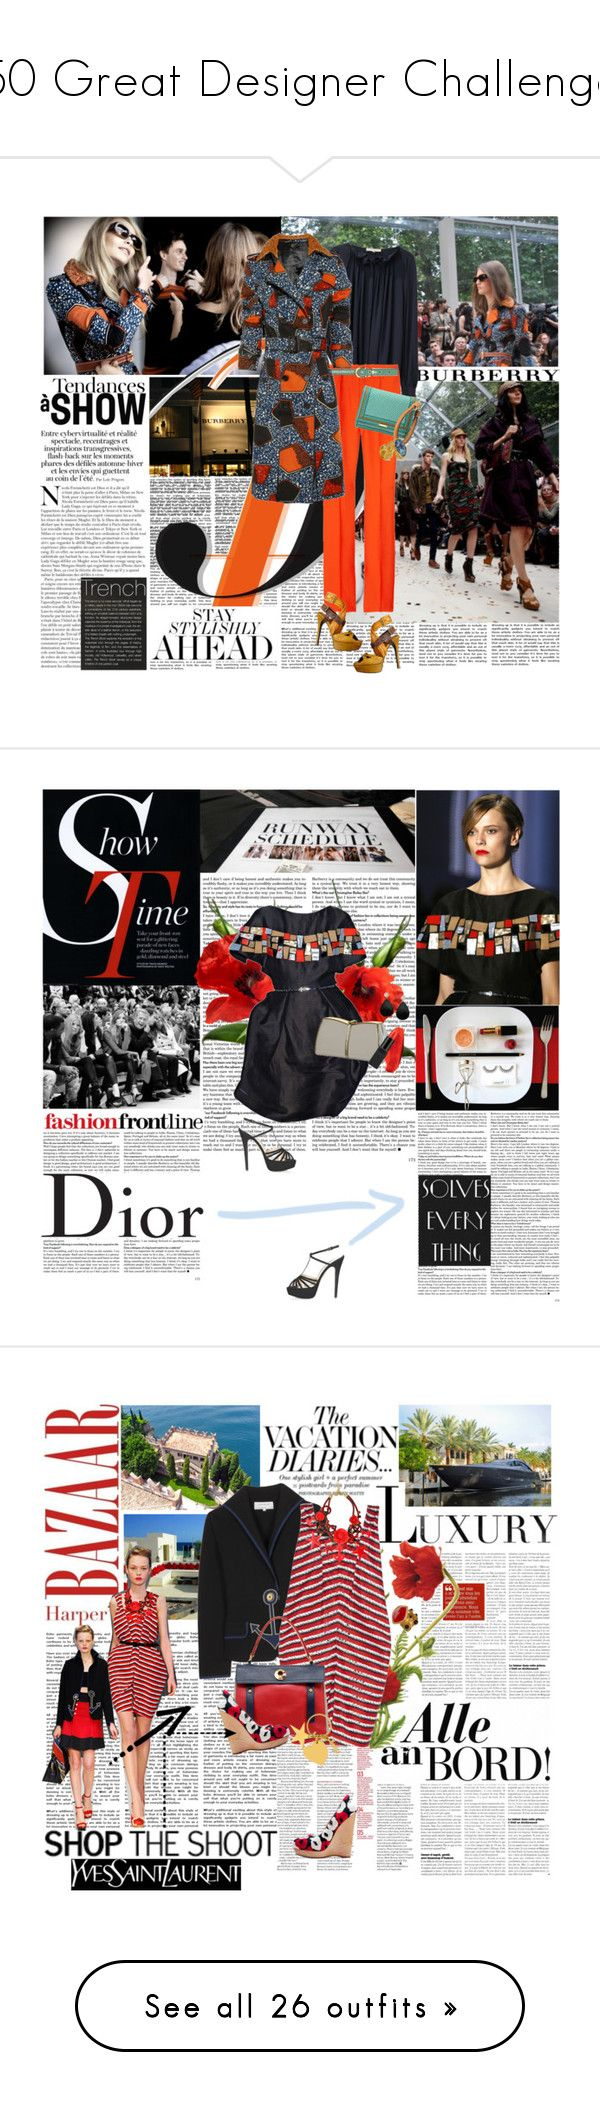 """""""50 Great Designer Challenge"""" by girlygirl ❤ liked on Polyvore featuring Burberry, Vanessa Bruno, Vionnet, Dorothy Perkins, Yves Saint Laurent, Assouline Publishing, trench coats, clutches, burberry and Christian Dior"""